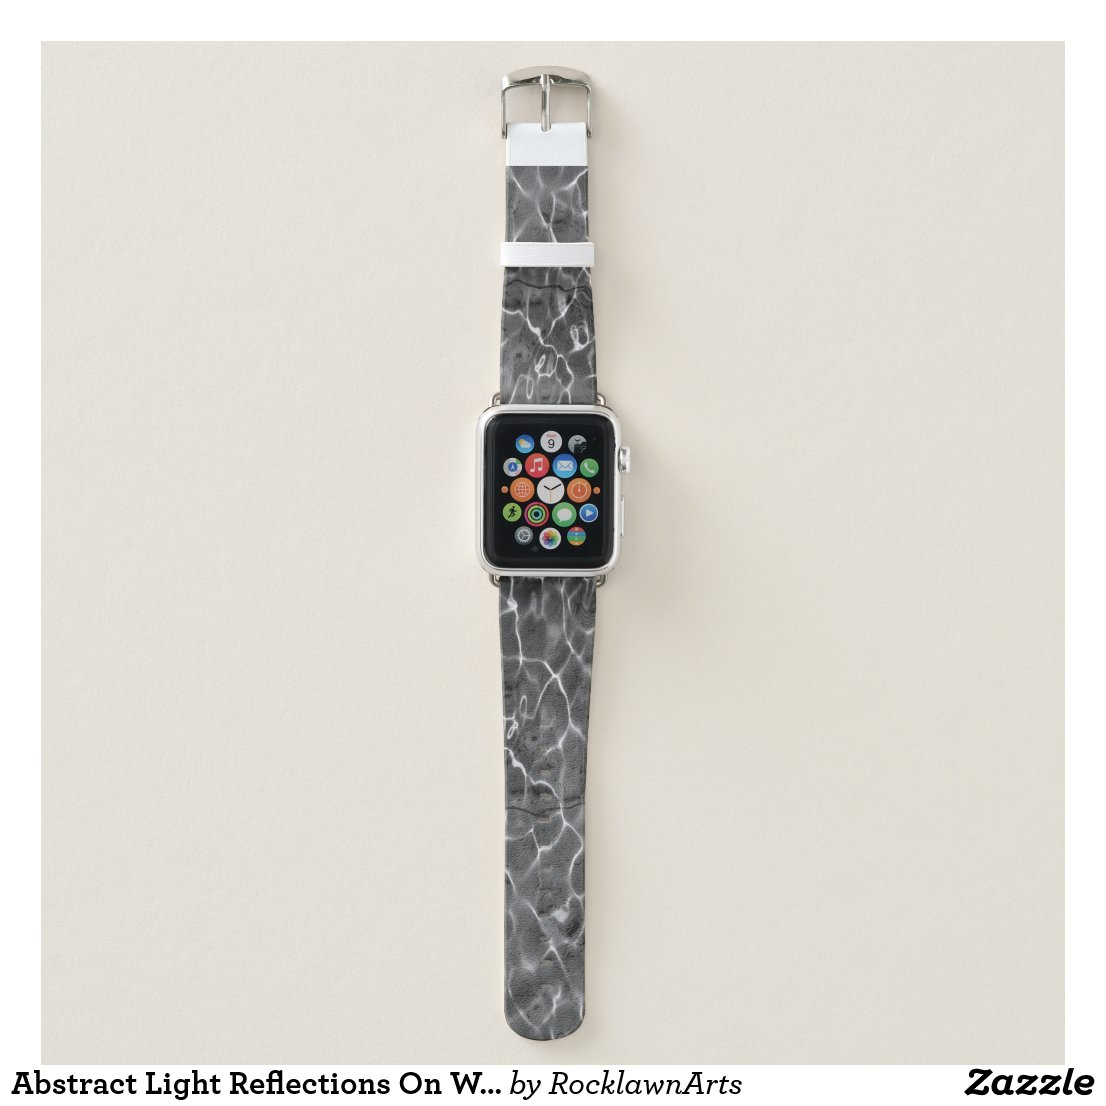 Abstract Light Reflections On Water: Black & White Apple Watch Band